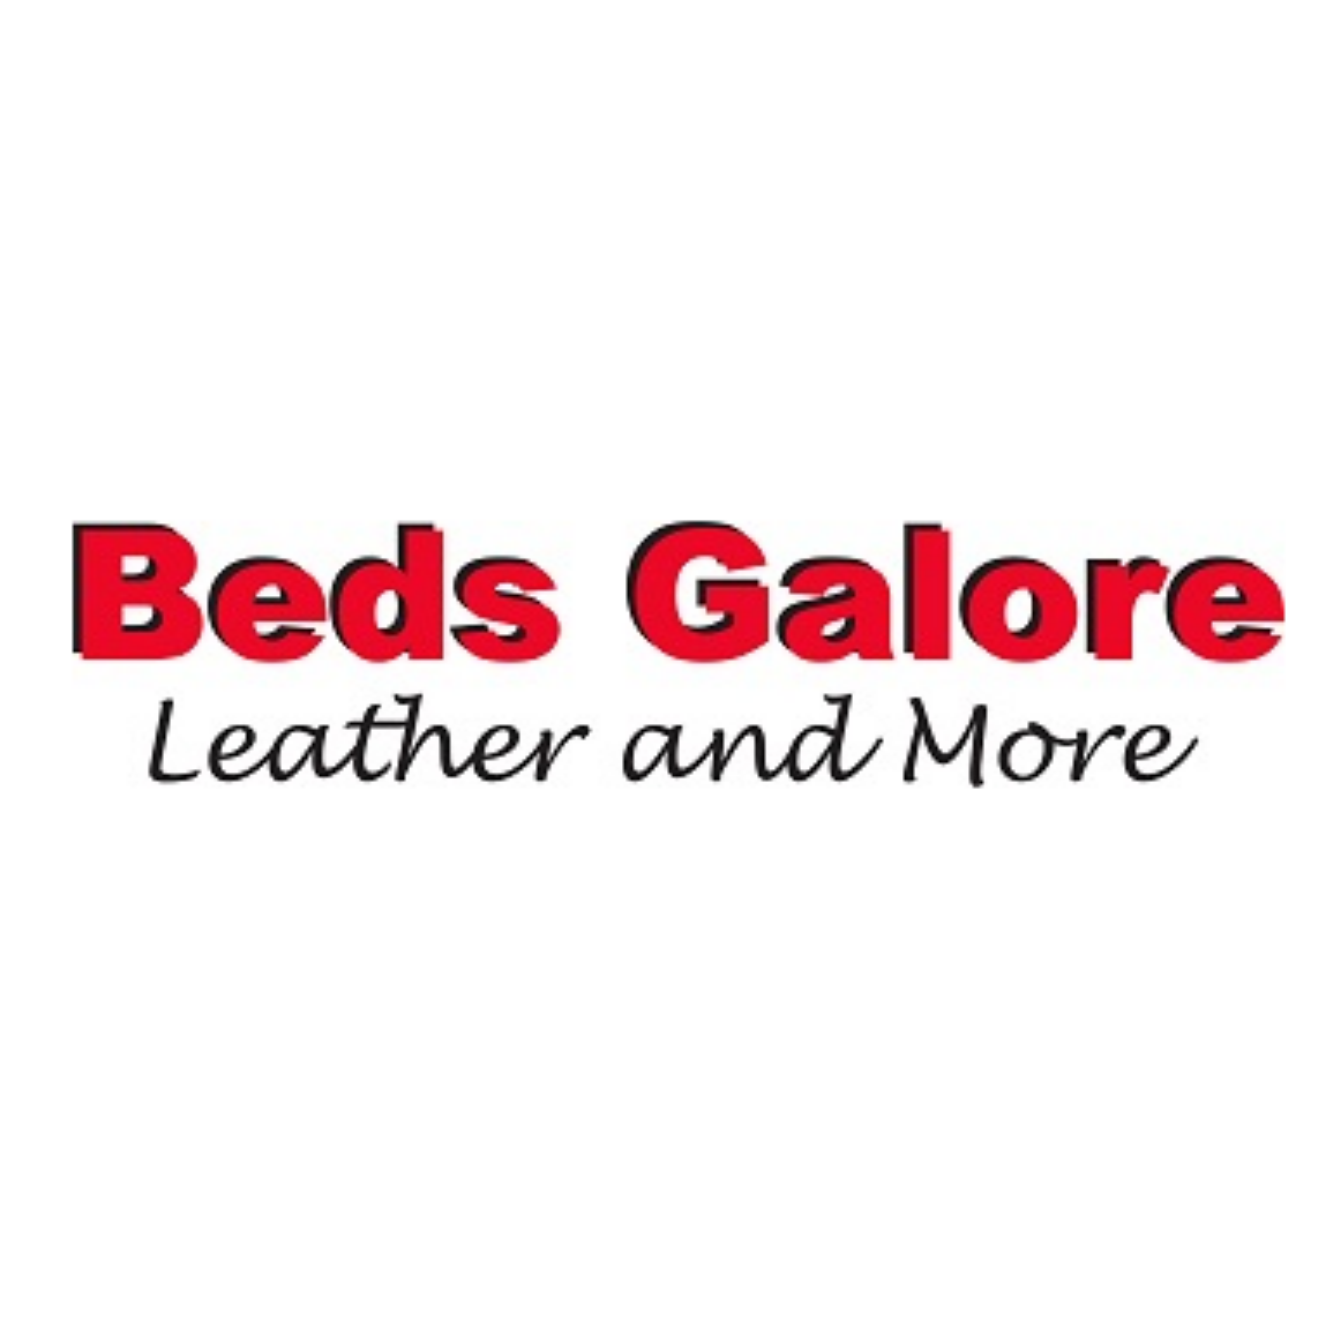 Beds Galore Leather & More